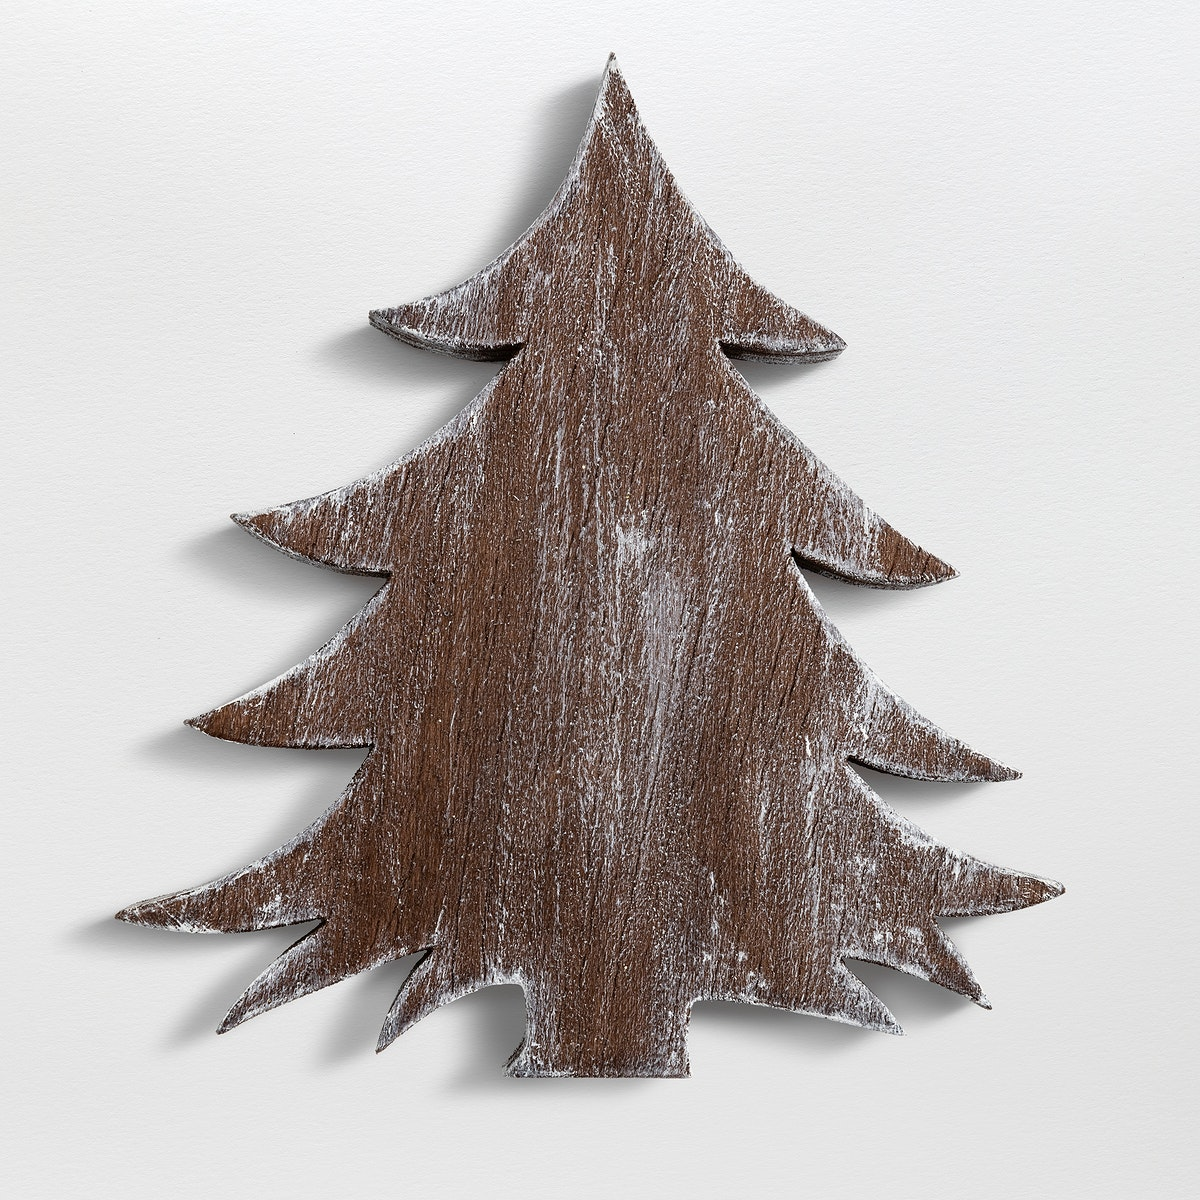 A Christmas wooden tree ornament isolated on gray background